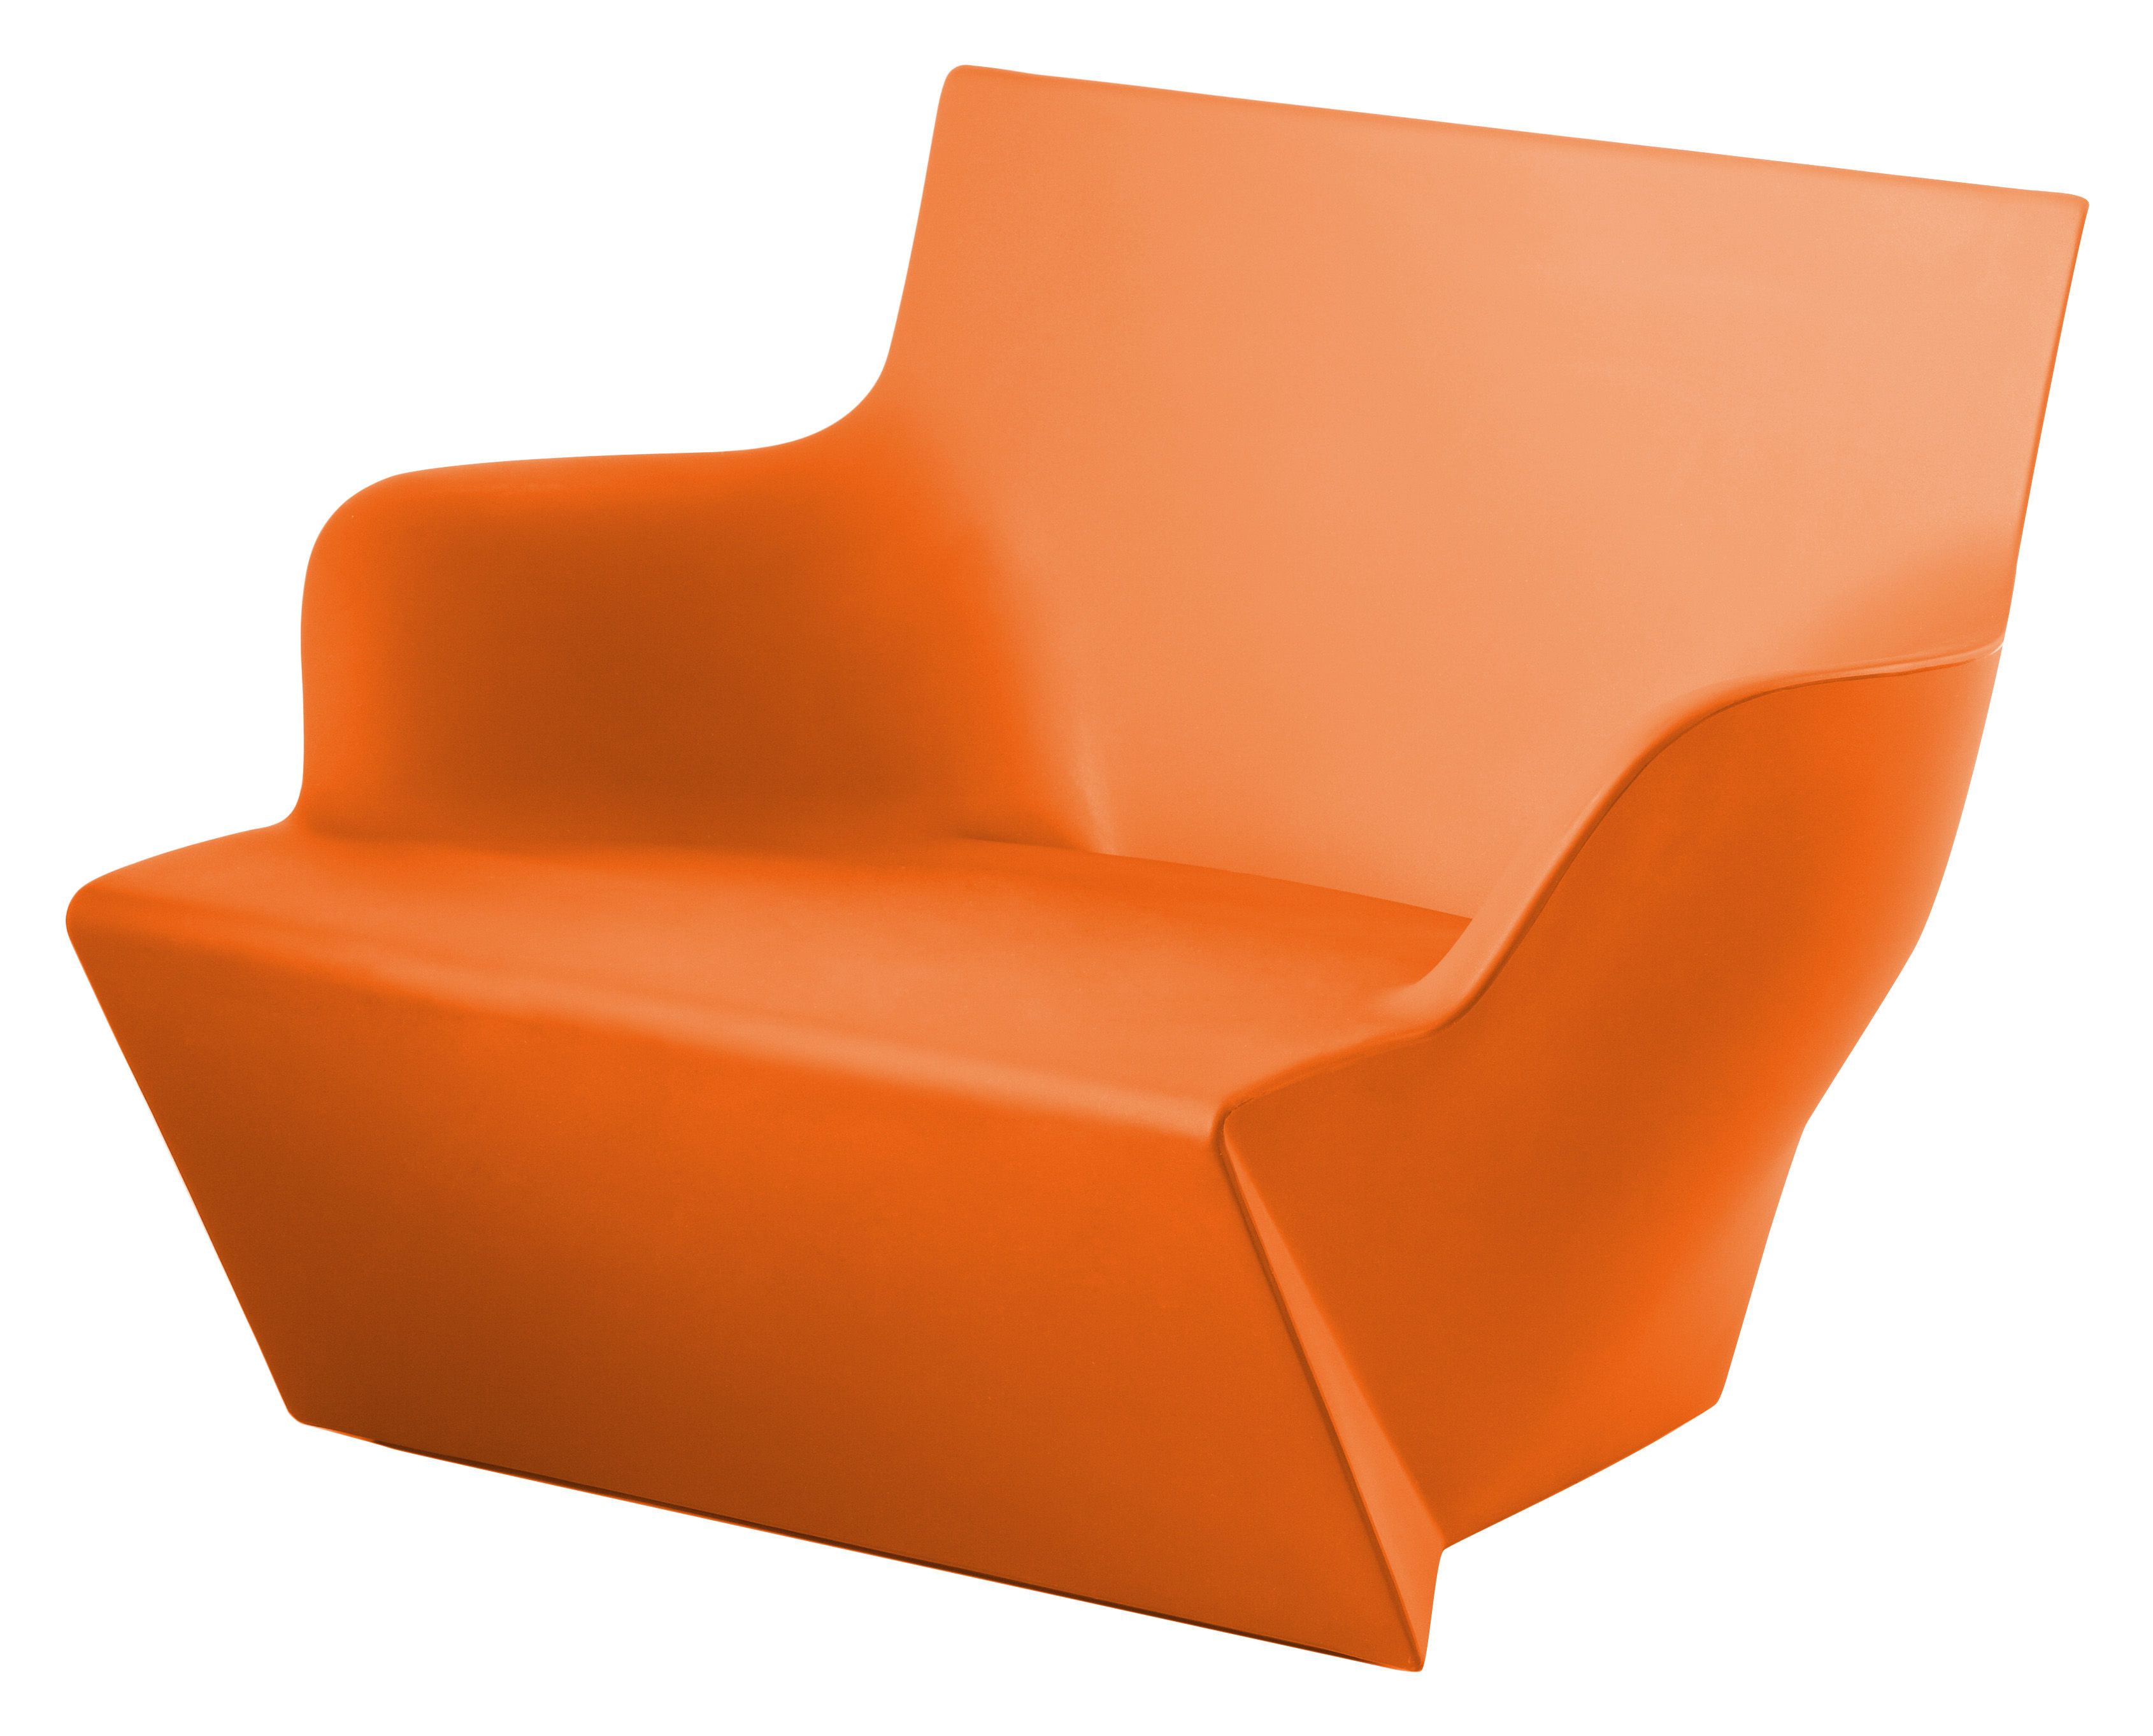 Möbel - Lounge Sessel - Kami San Sessel - Slide - Orange - recycelbares Polyethen